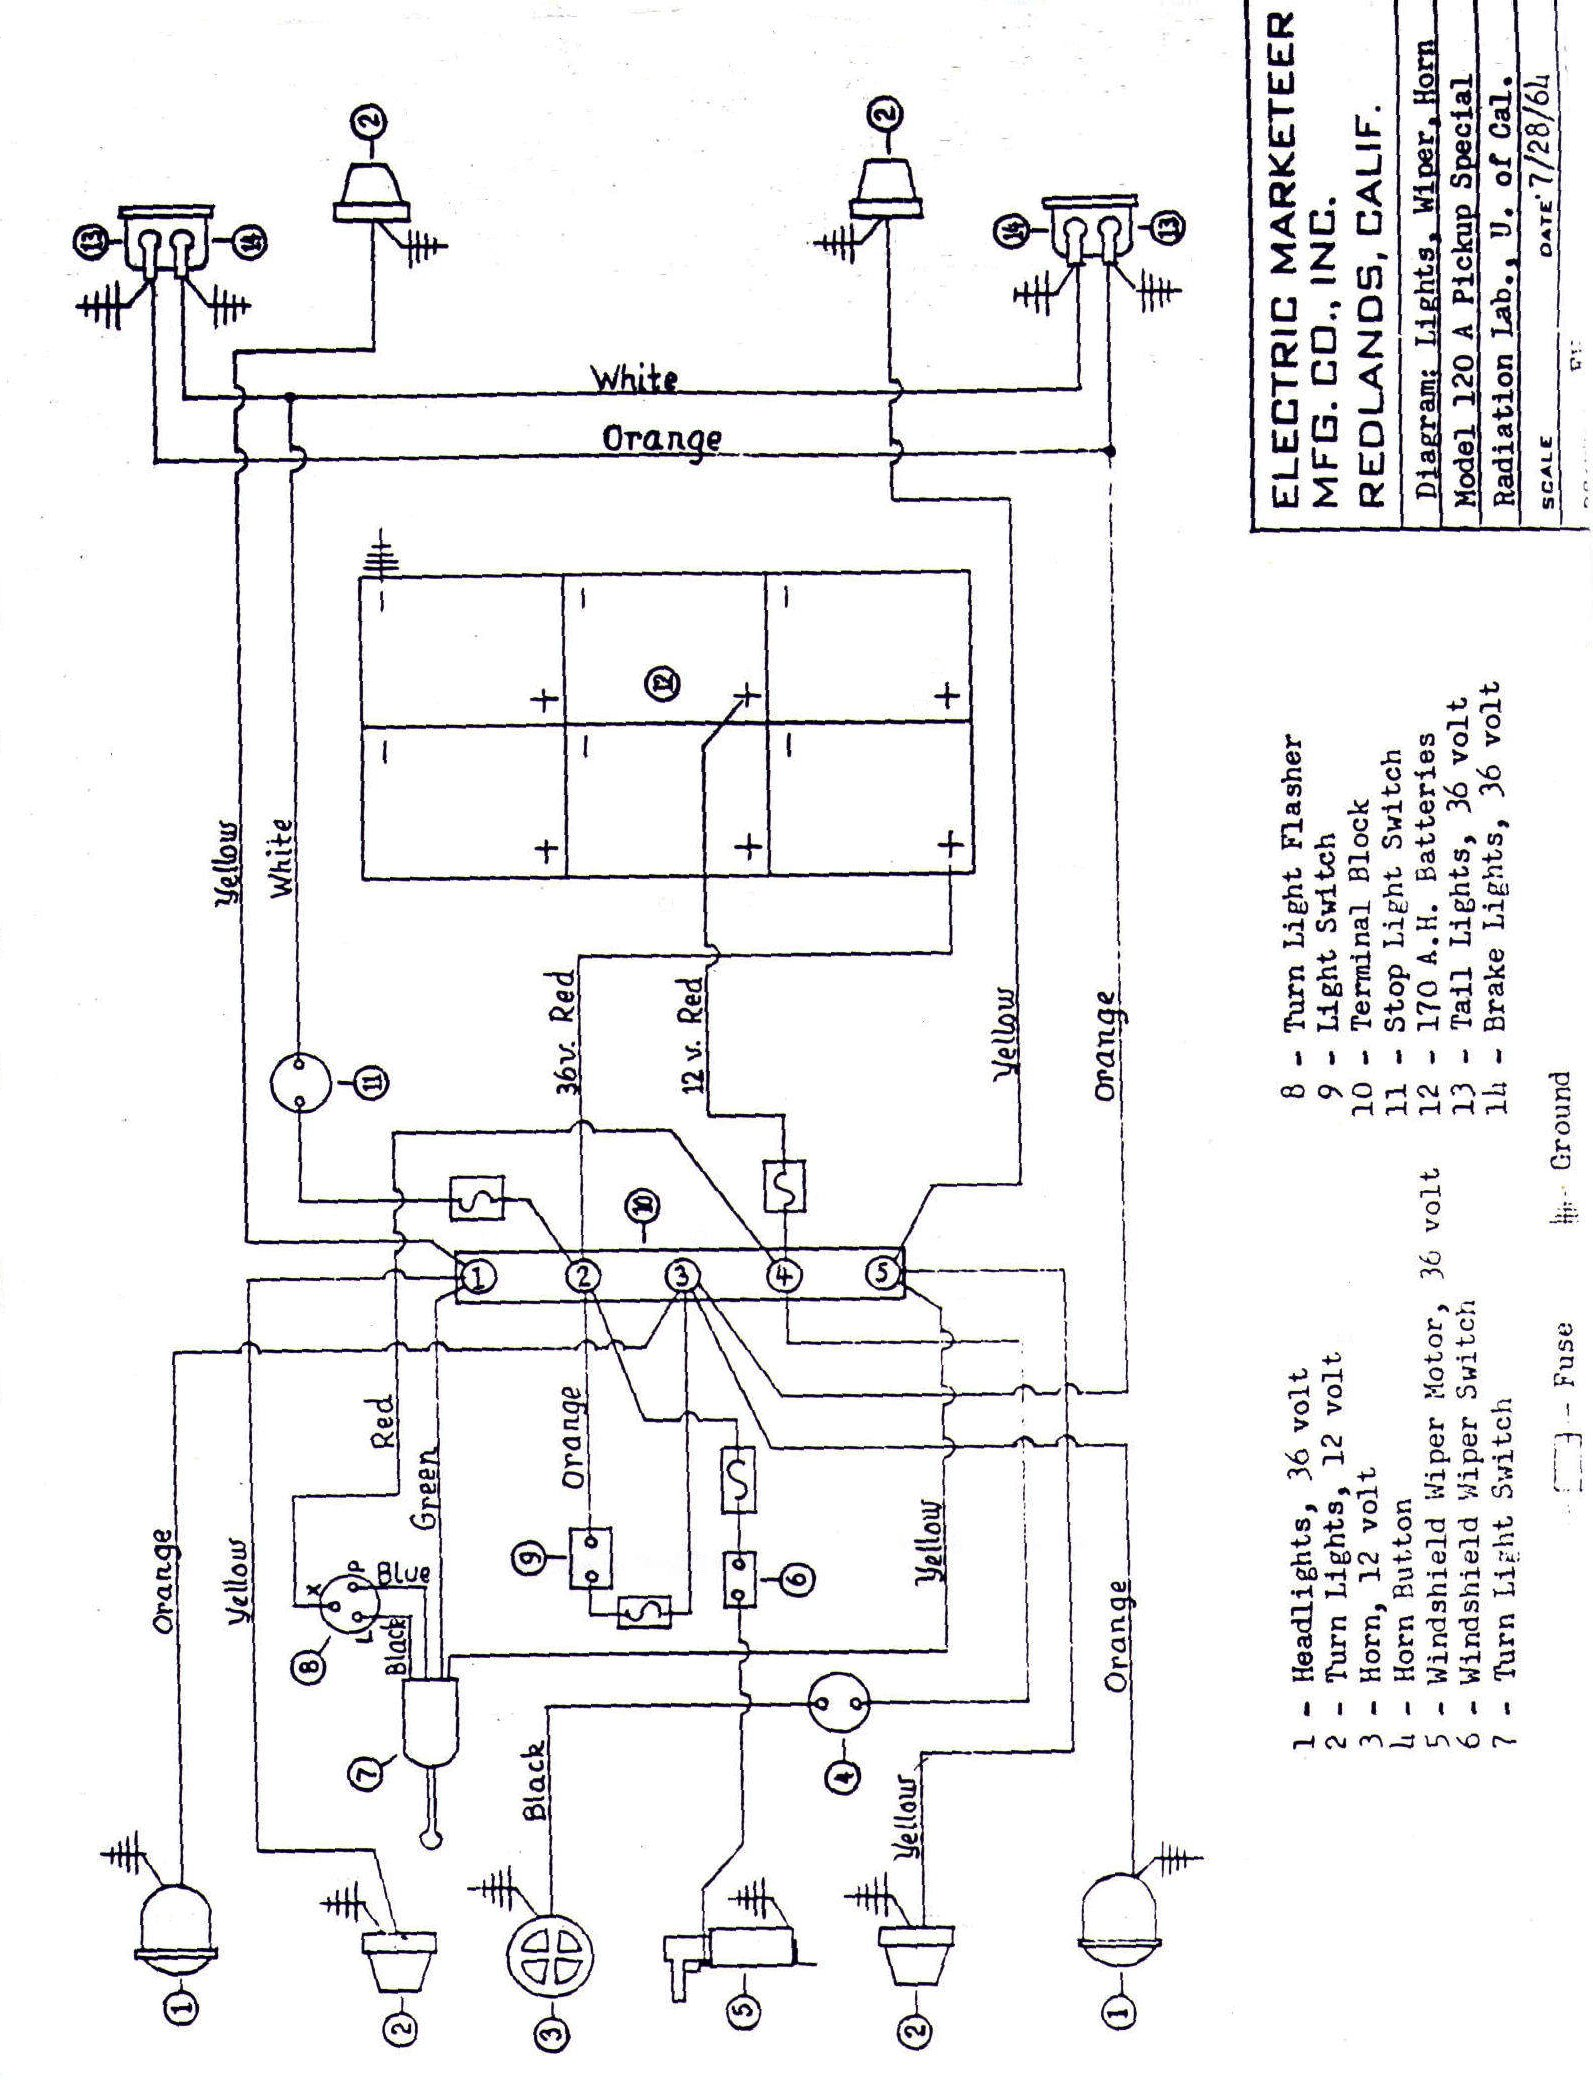 wiring diagram for melex 512 golf cart wiring diagram schematics